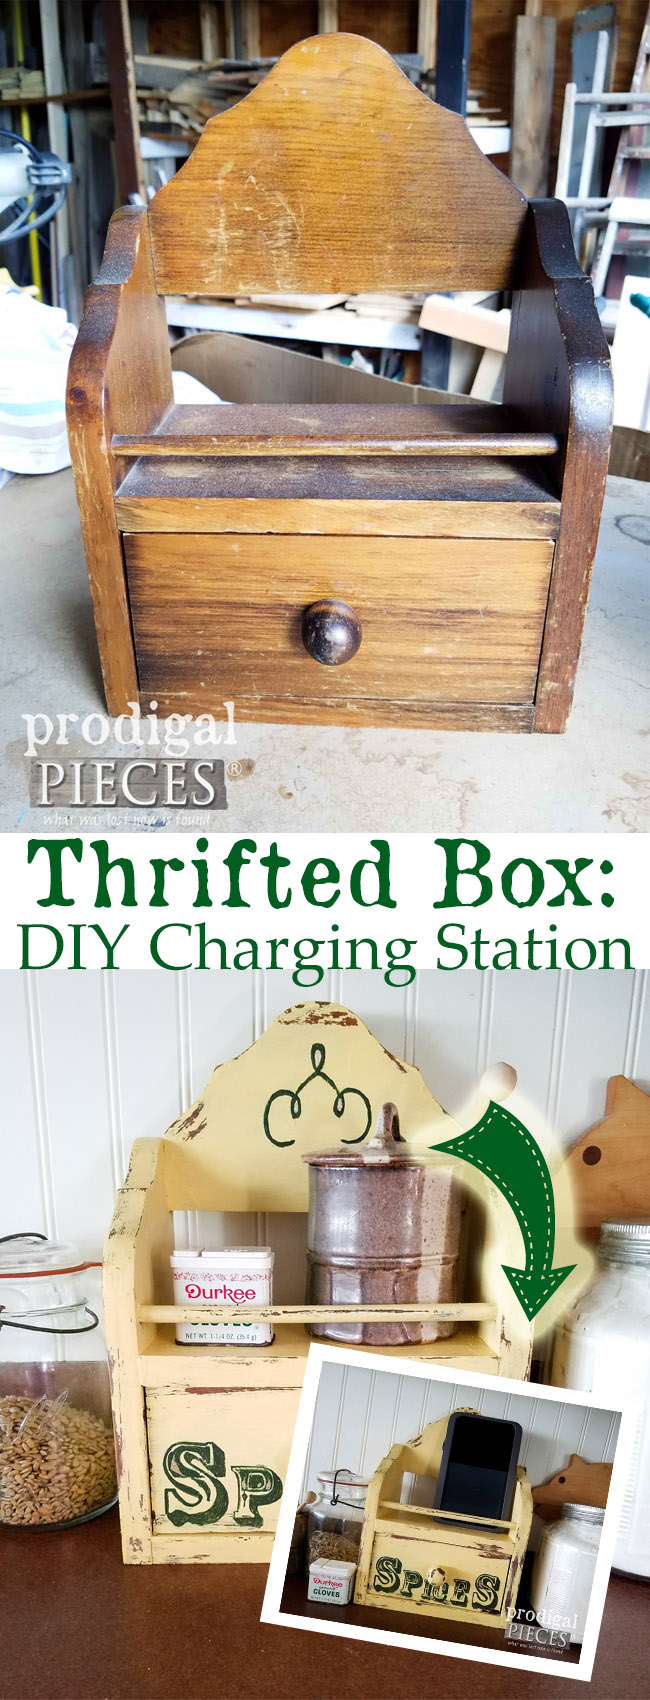 So cool! A thrifted box can be so much more. Turn it into a DIY charging station. Larissa of Prodigal Pieces shows you how. Head to prodigalpieces.com